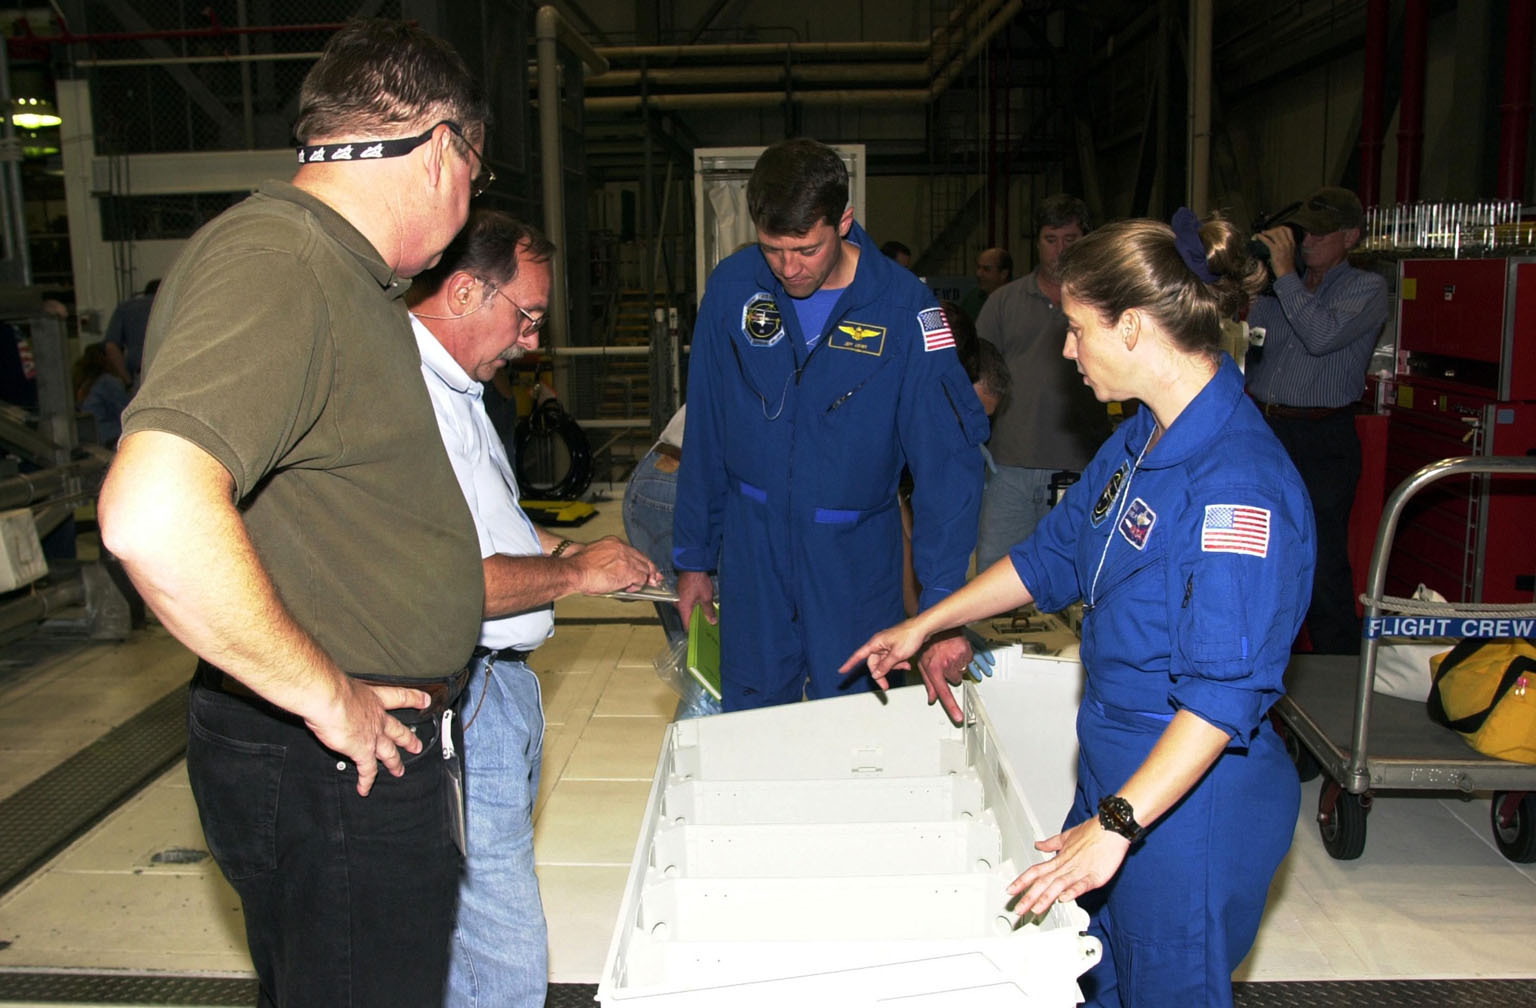 KENNEDY SPACE CENTER, FLA. -- During a Crew Equipment Interface Test, STS-112 Pilot Pamela Melroy (right) points to an area of equipment inventory while Commander Jeffrey Ashby looks on. At left, two technicians help out. STS-112 is the 15th assembly flight to the International Space Station and will be ferrying the S1 Integrated Truss Structure. The S1 truss is the first starboard (right-side) truss segment, whose main job is providing structural support for the radiator panels that cool the Space Station's complex power system. The S1 truss segment also will house communications systems, external experiment positions and other subsystems. The S1 truss will be attached to the S0 truss. STS-112 is currently scheduled for launch Aug. 22, 2002